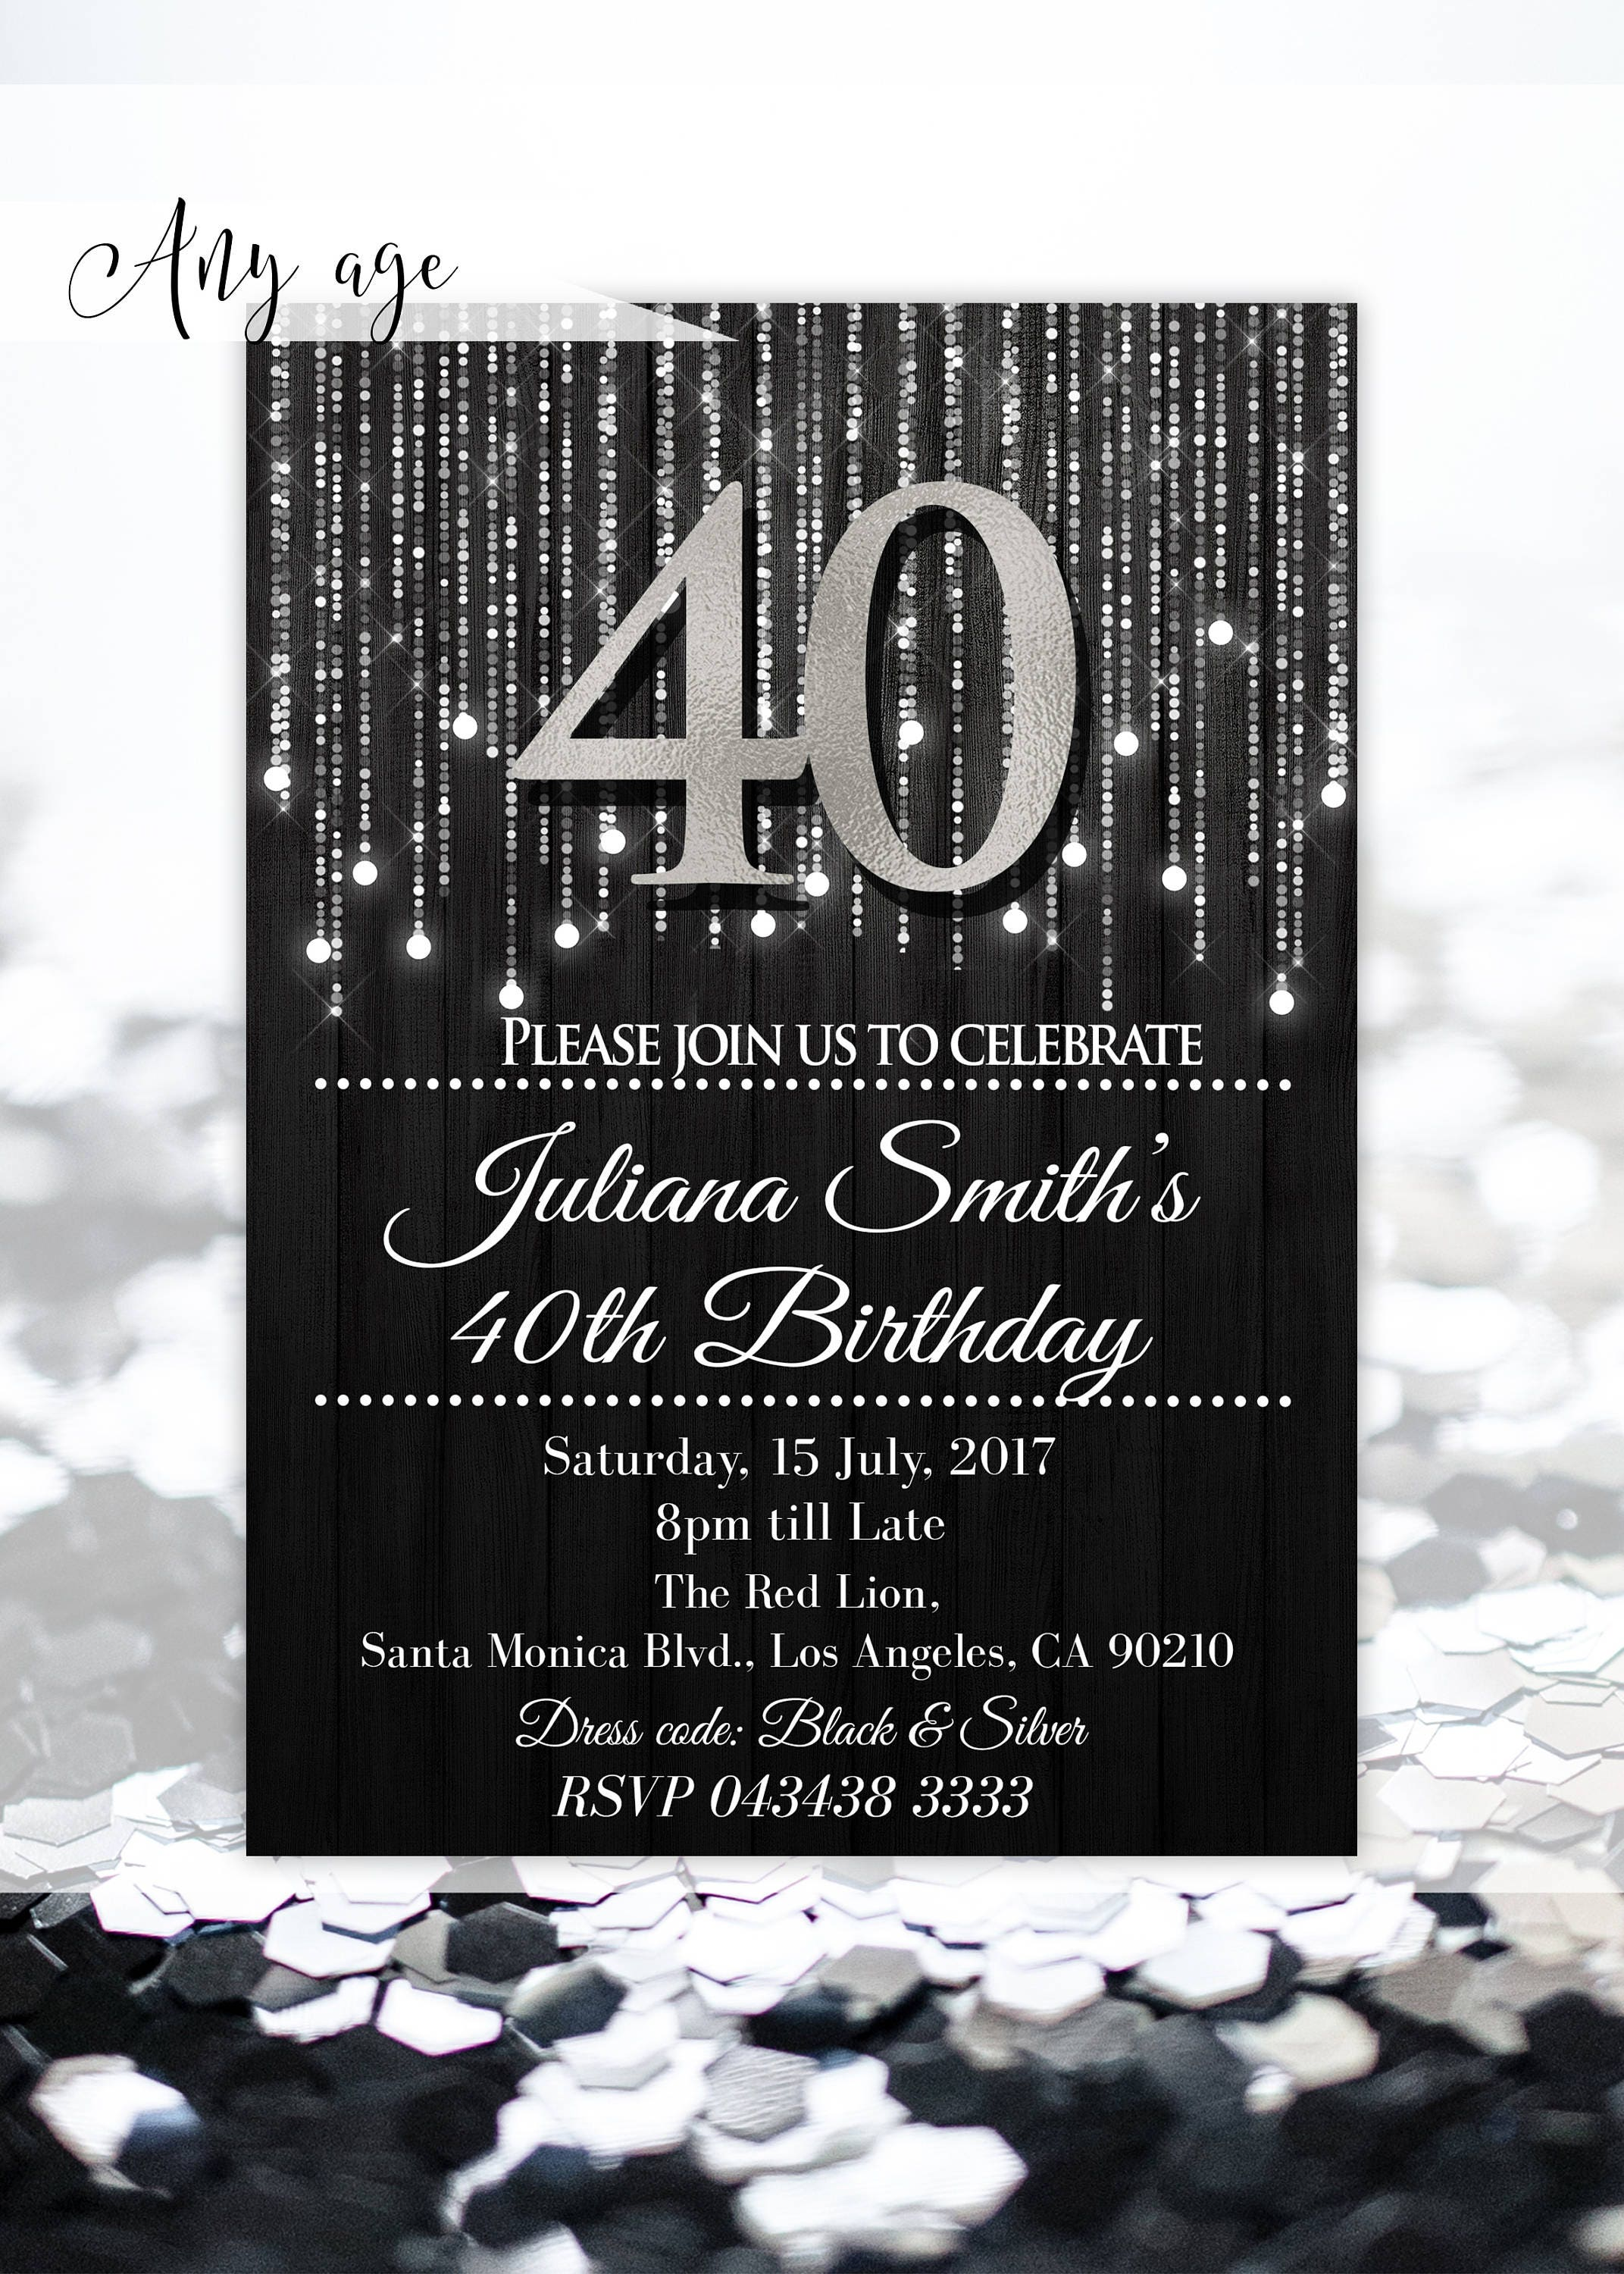 Silver invitations 40th birthday invitations for womens Elegant